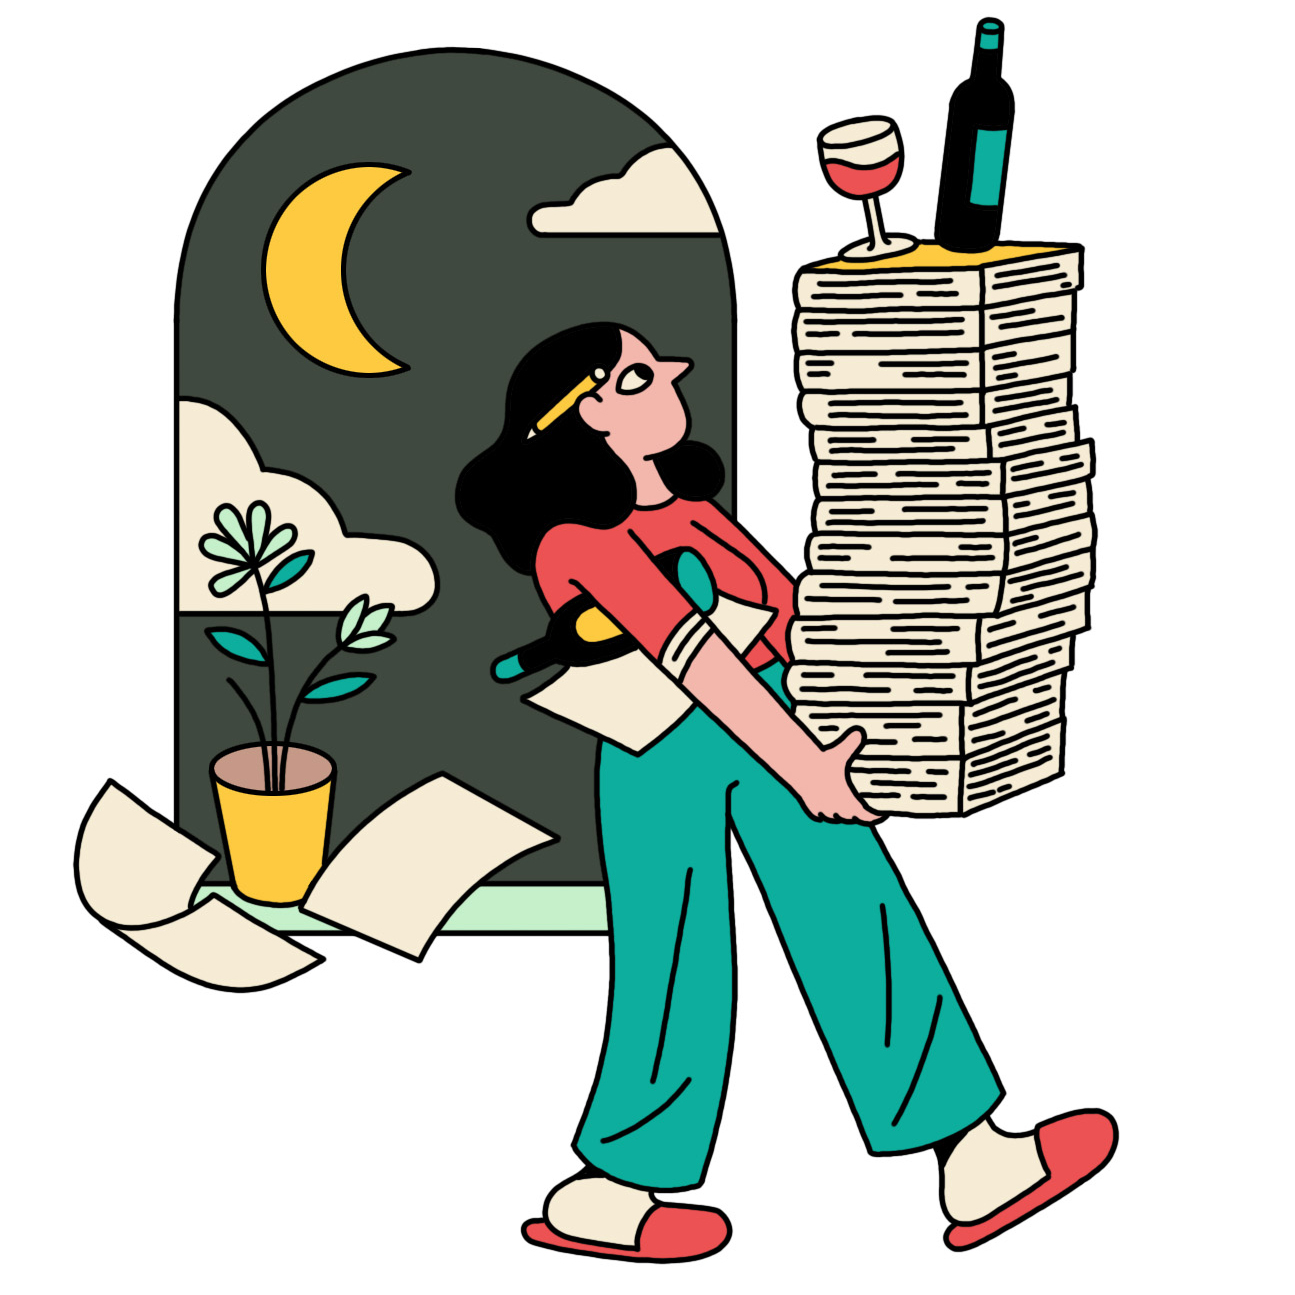 illustration of woman carrying a stack of books with a wine bottle and glass on top